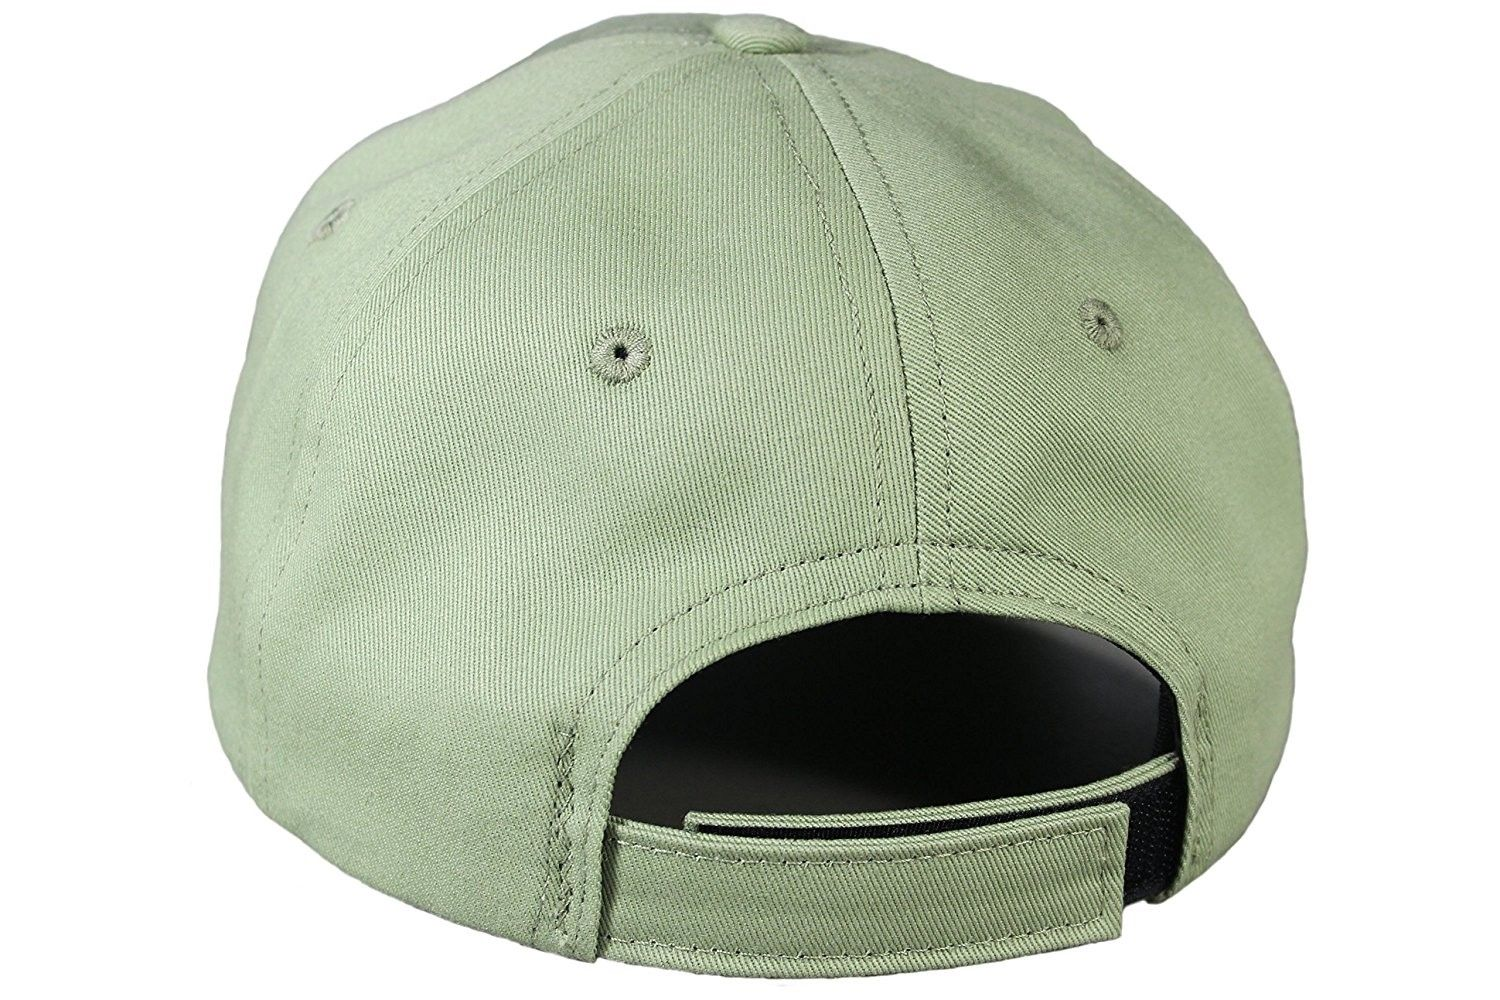 Unisex Twill Ball Cap. Made in the USA - C112NRJJBO9 - Hats   Caps 5298a4cc0